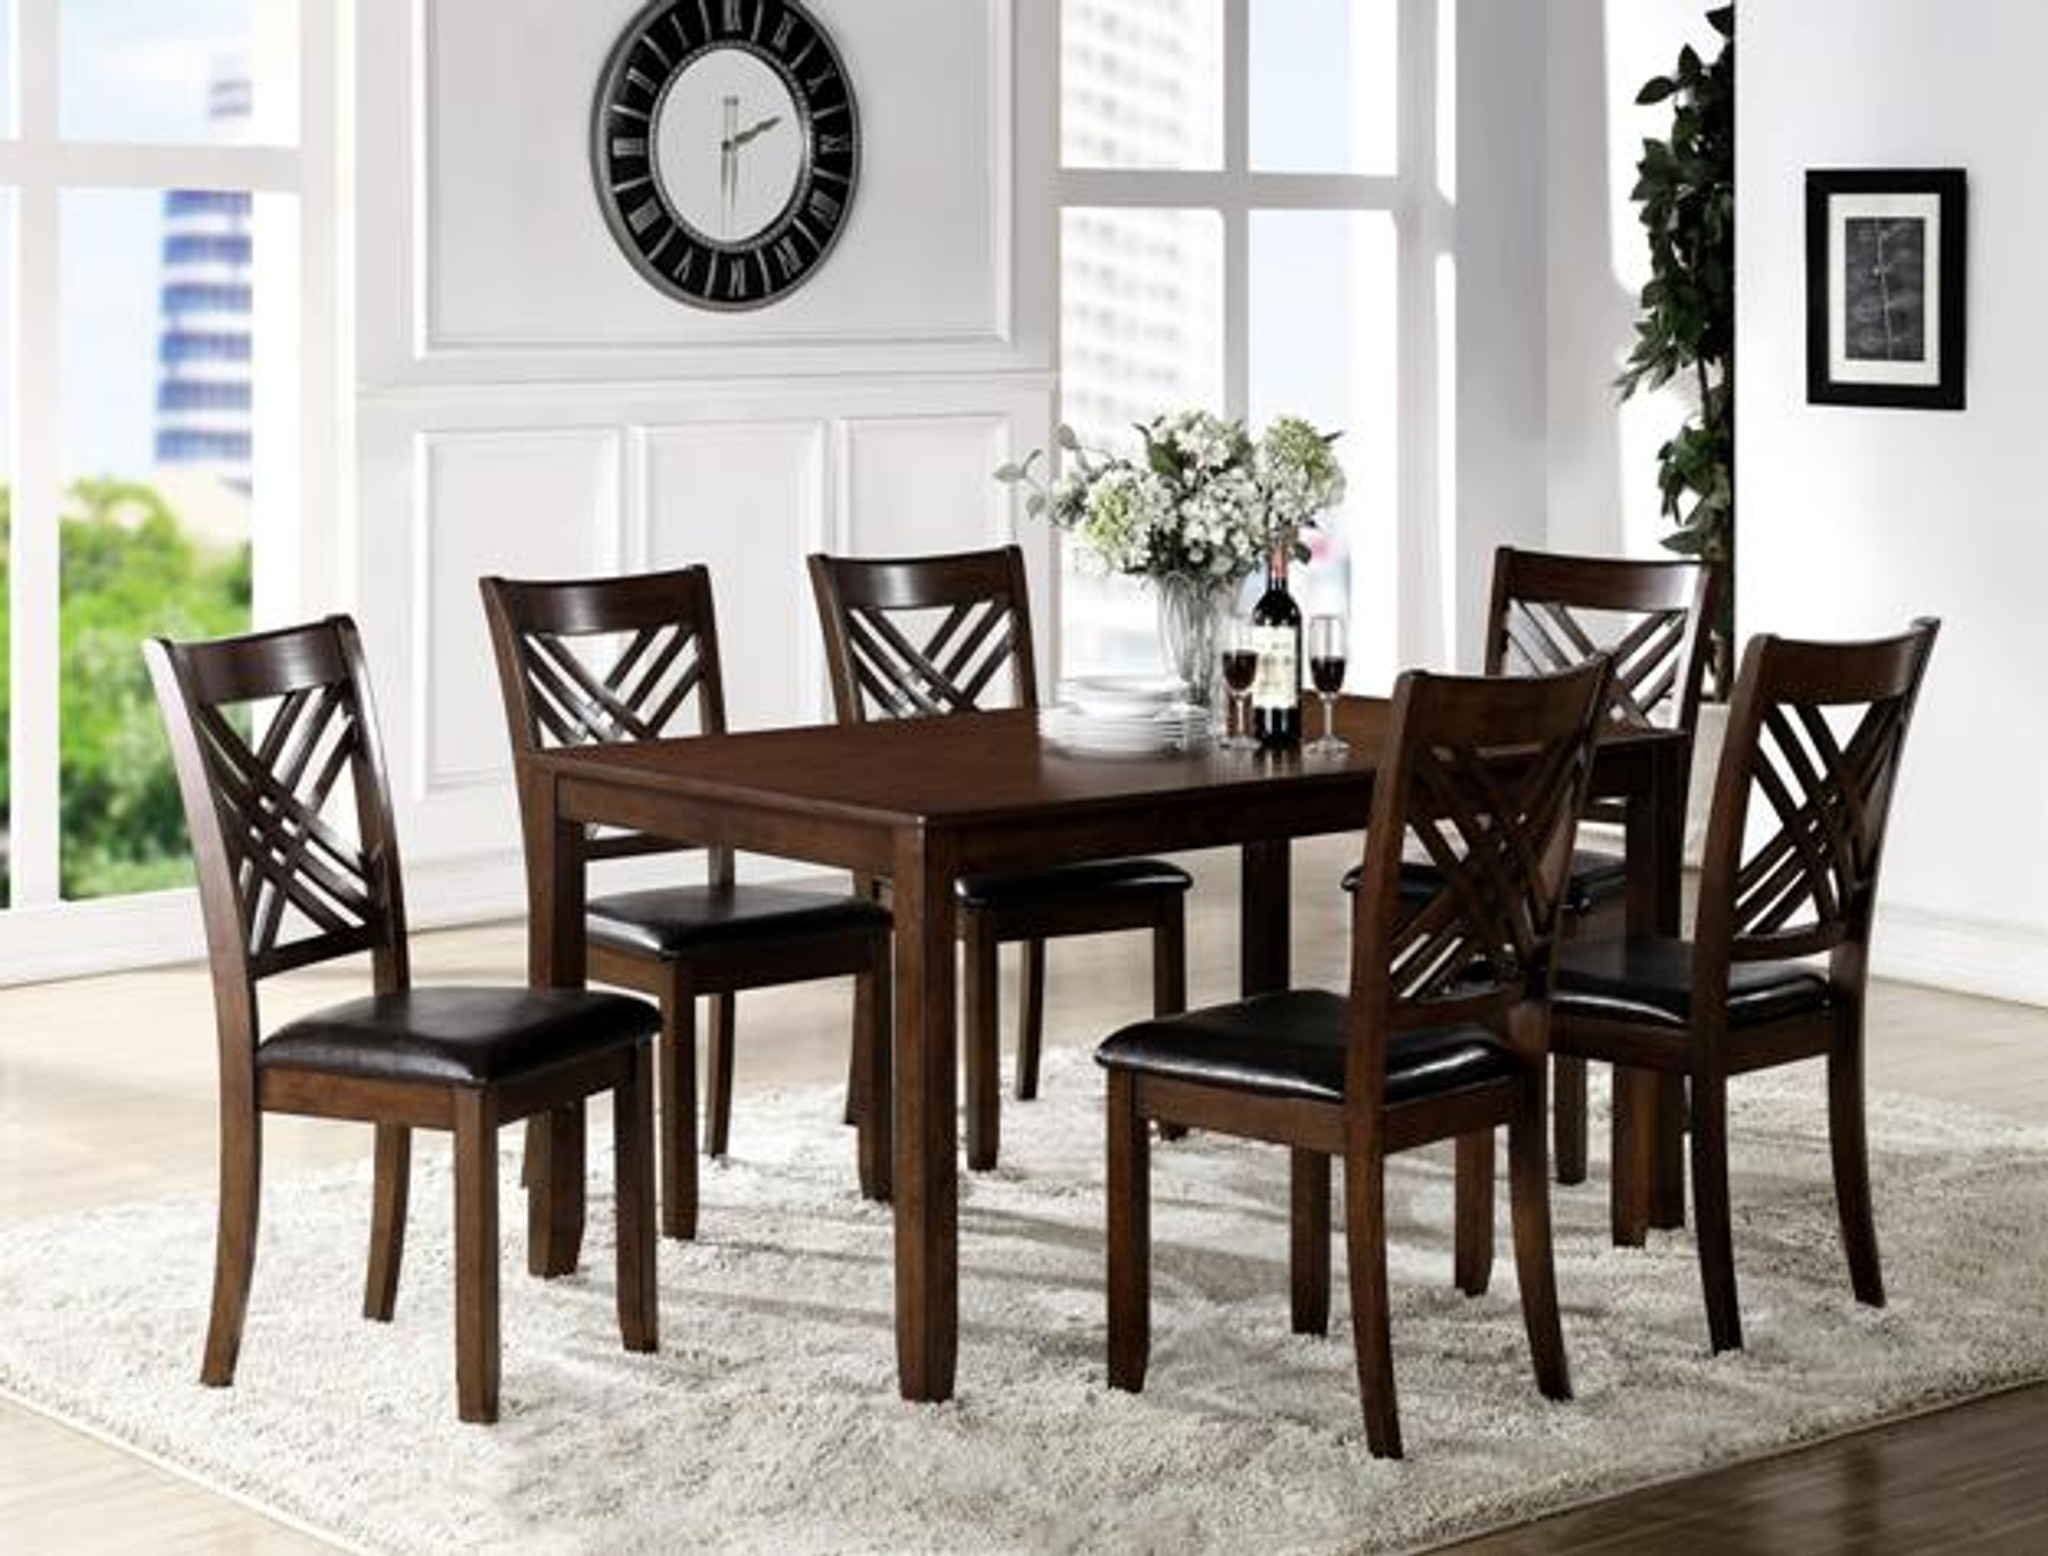 Eloise 7 Pc Dining Room Table Set Set Km Home Furniture